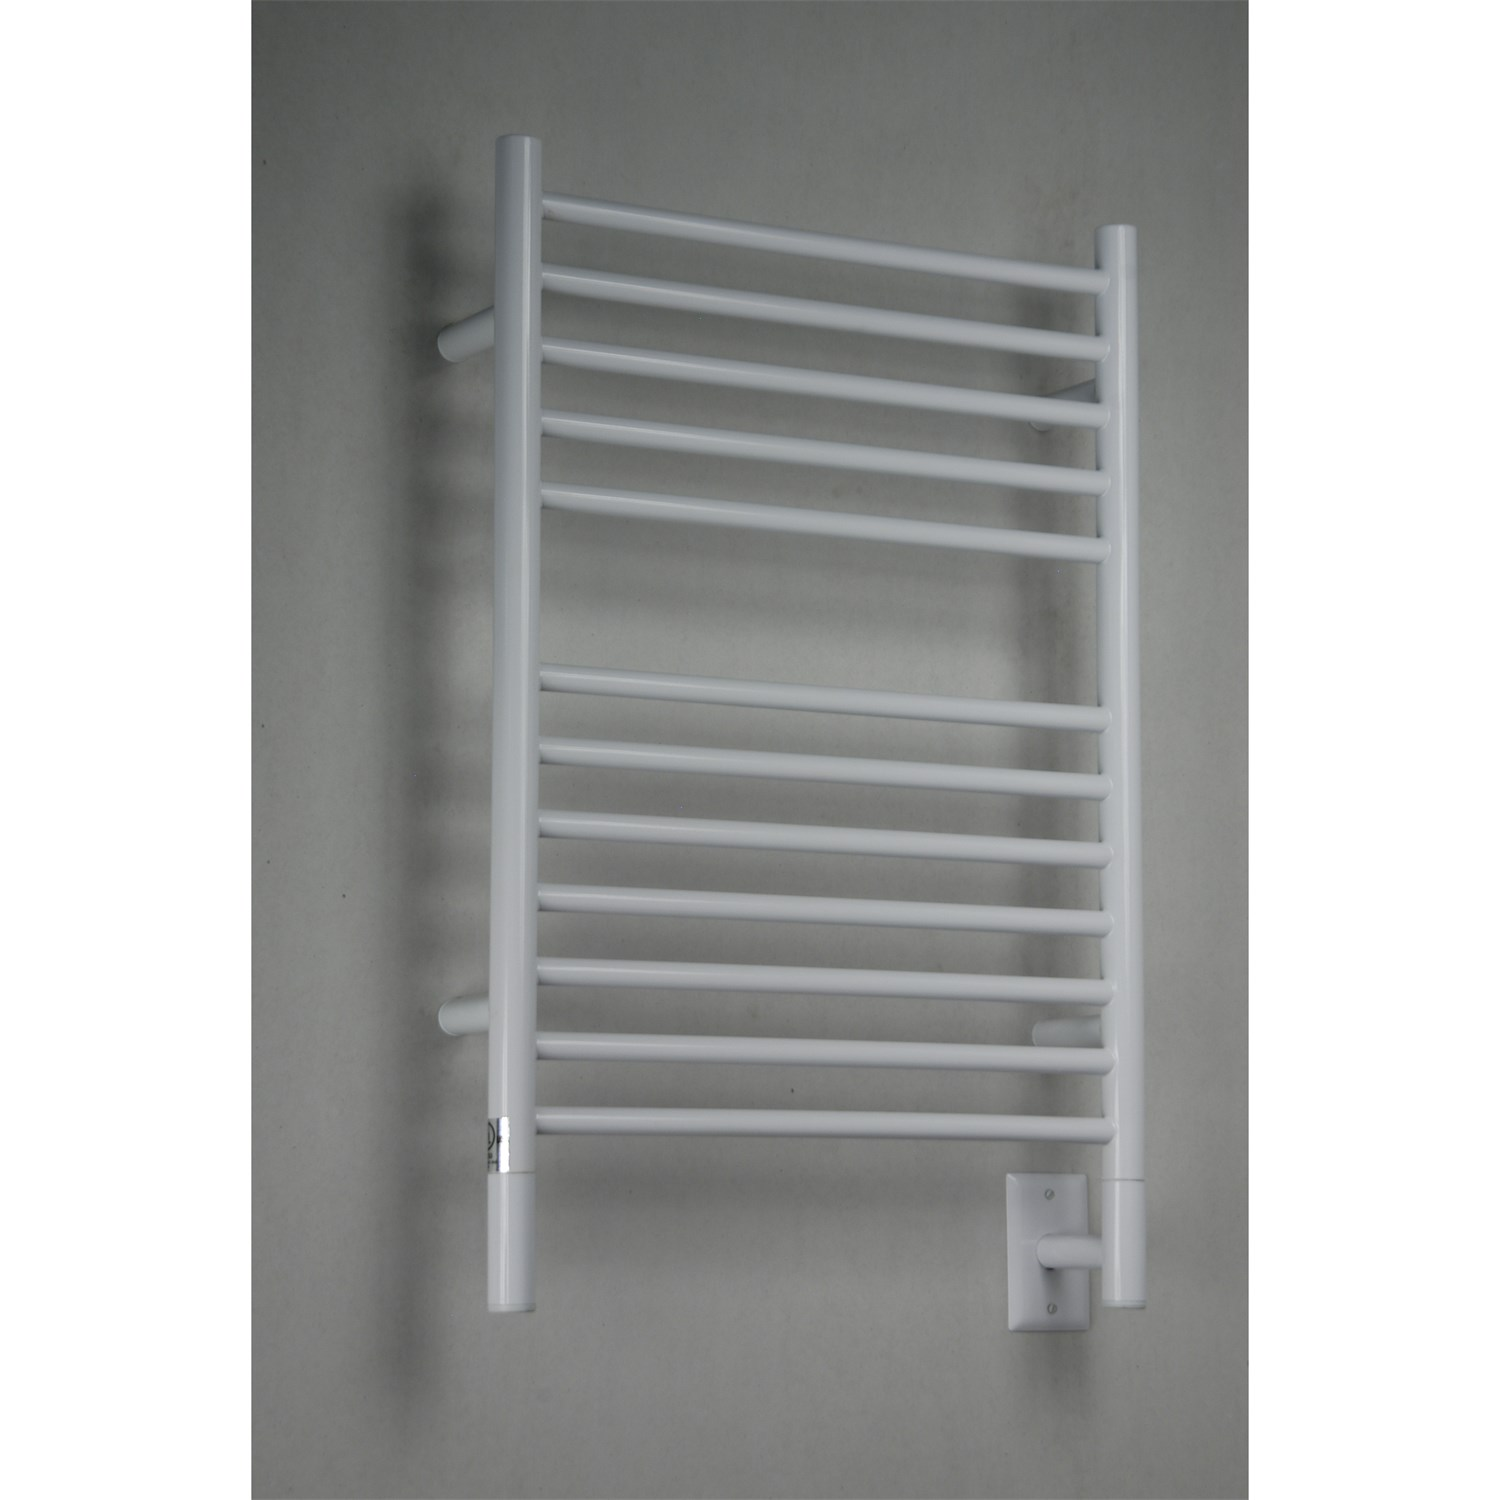 Awesome Amba Towel Warmers for Best Tower Warmer Inspiration: Amba Towel Warmers | Plug In Heated Towel Rack | Amba Towel Warmers